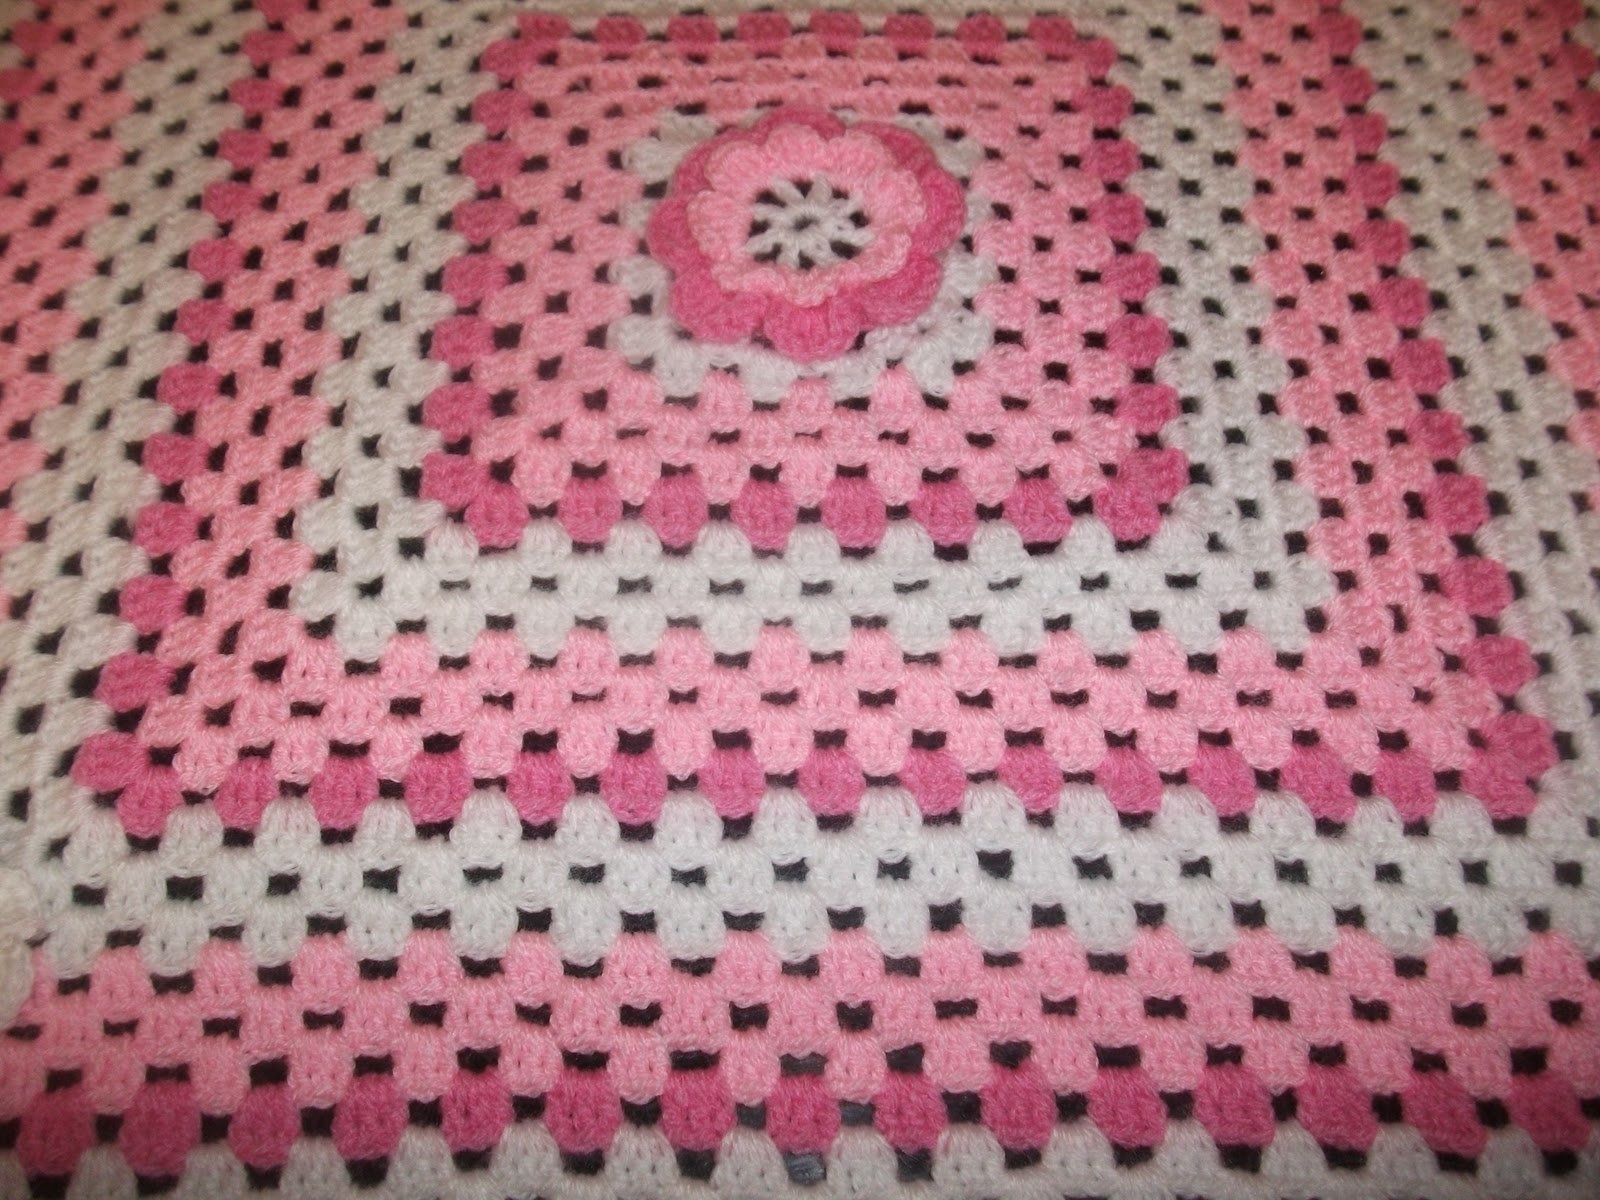 Crochet Patterns Free Baby Blankets For Beginners : Helens Colourful Crochet Blankets: New baby girl pink ...